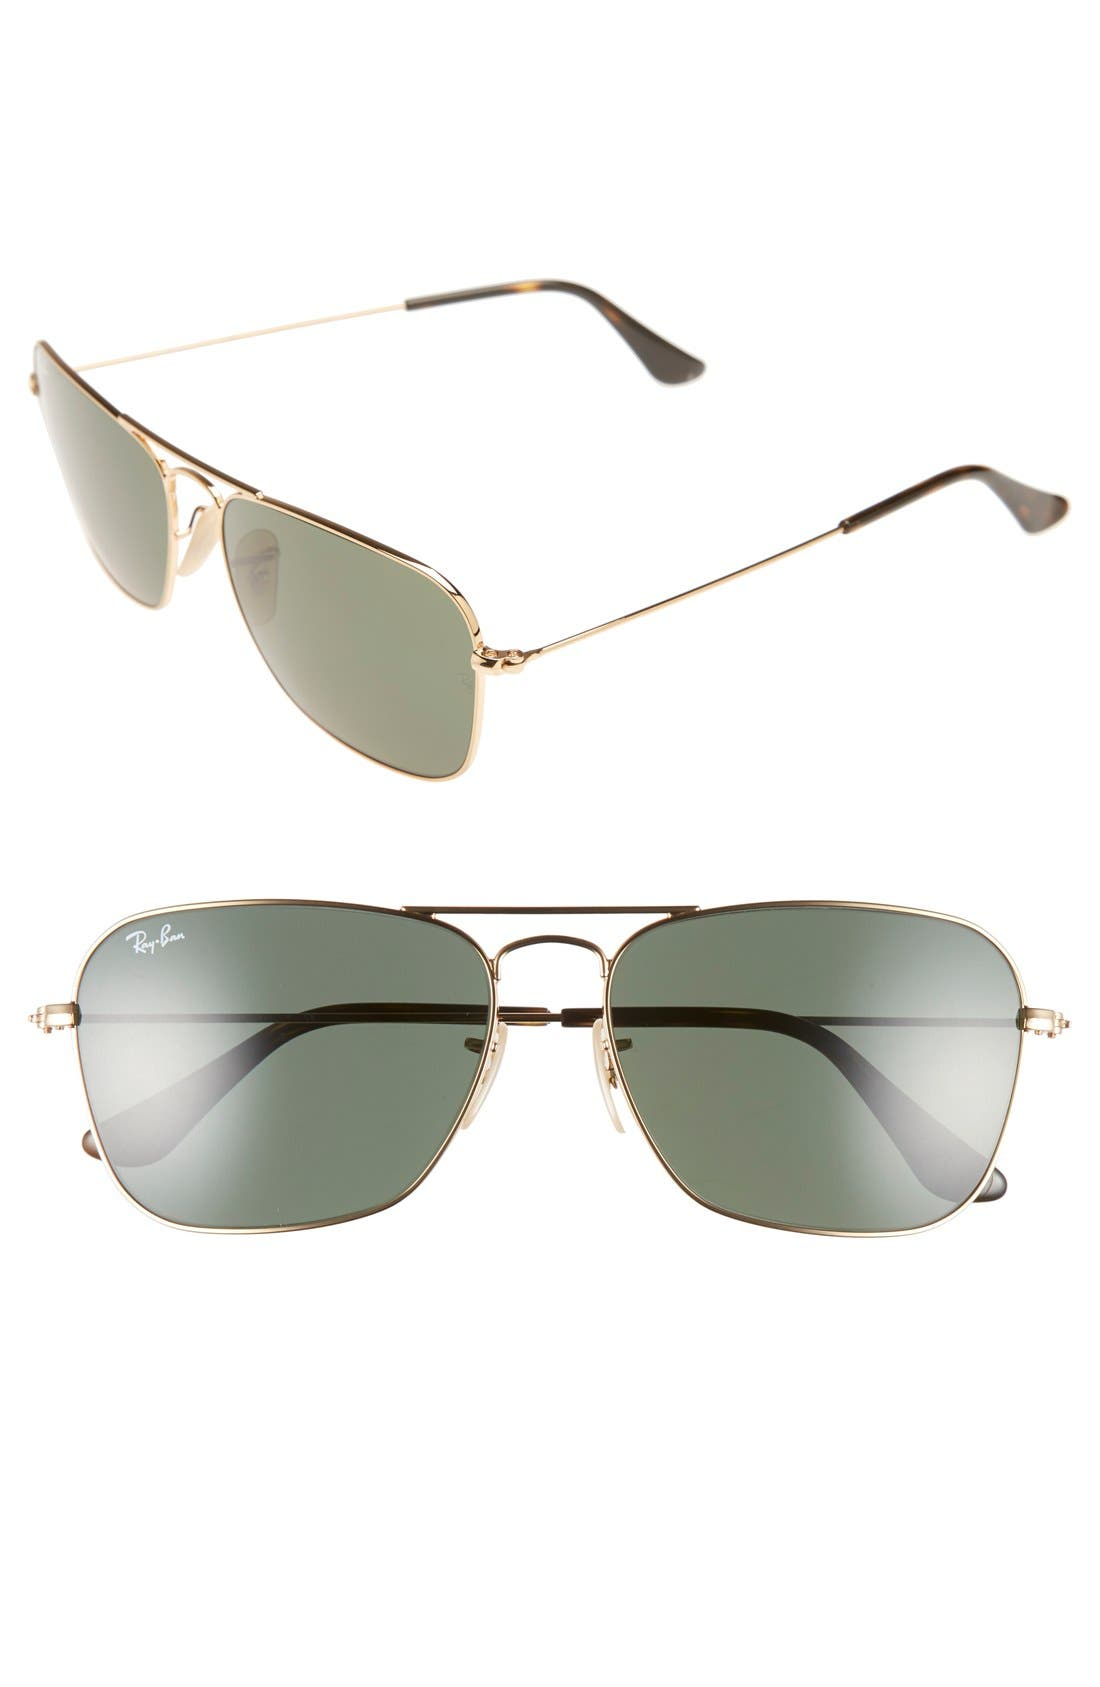 Alternate Image 1 Selected - Ray-Ban Caravan 58mm Aviator Sunglasses